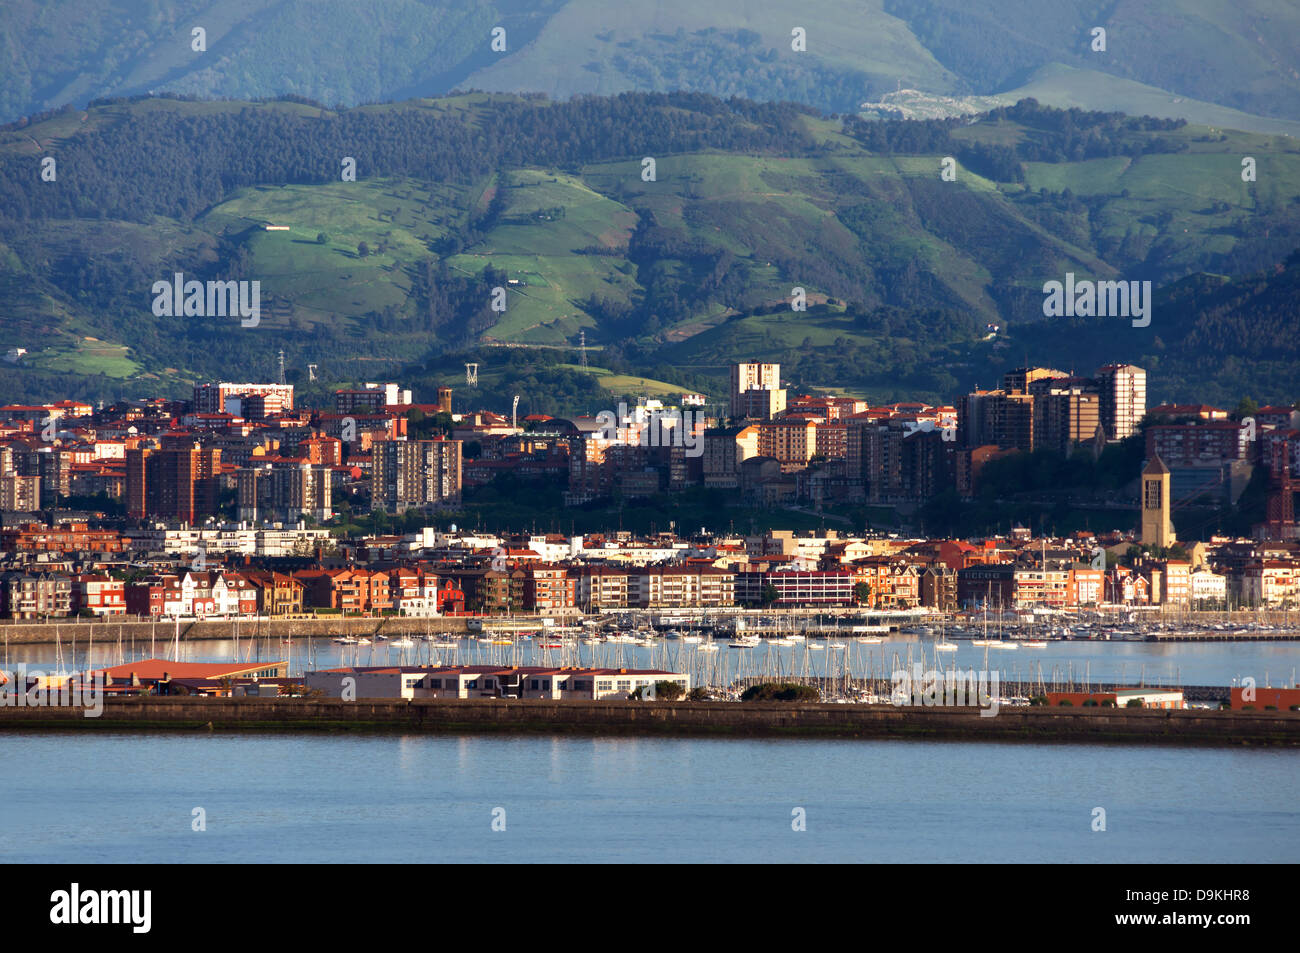 view of Getxo and Portugalete village with promenade. Biscay, Basque Country, Spain Stock Photo